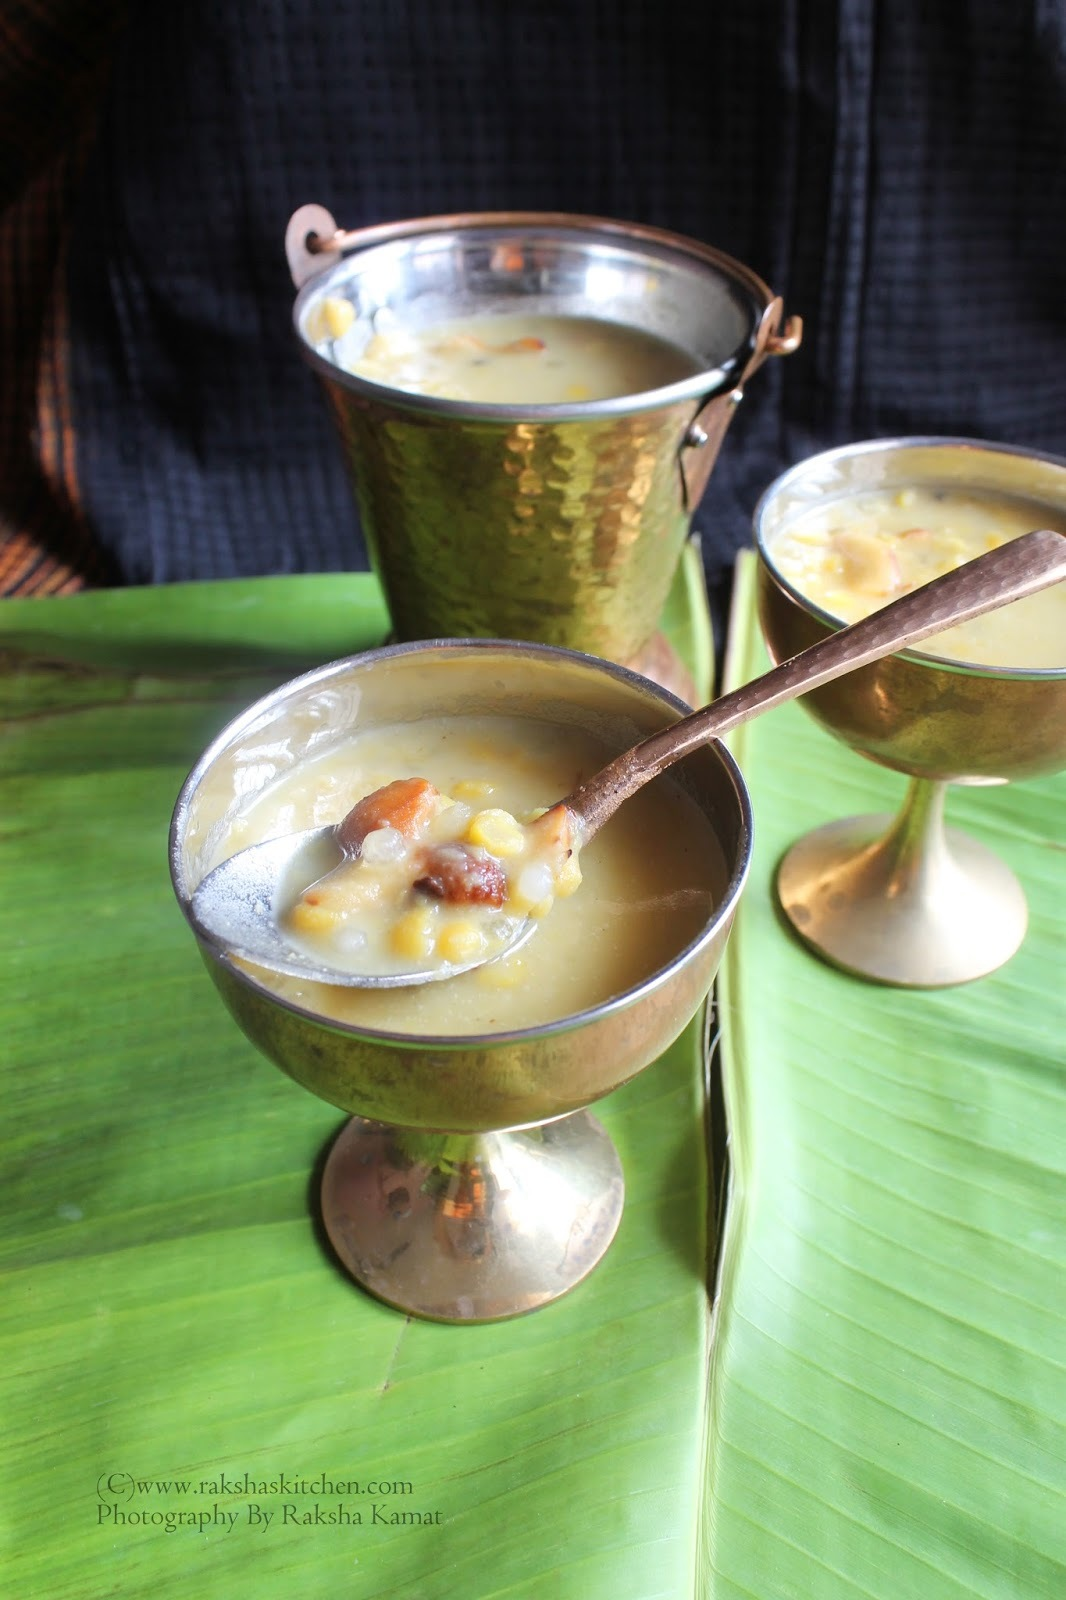 Manganem | Goan Chana Dal Sweet Dish For Diwali